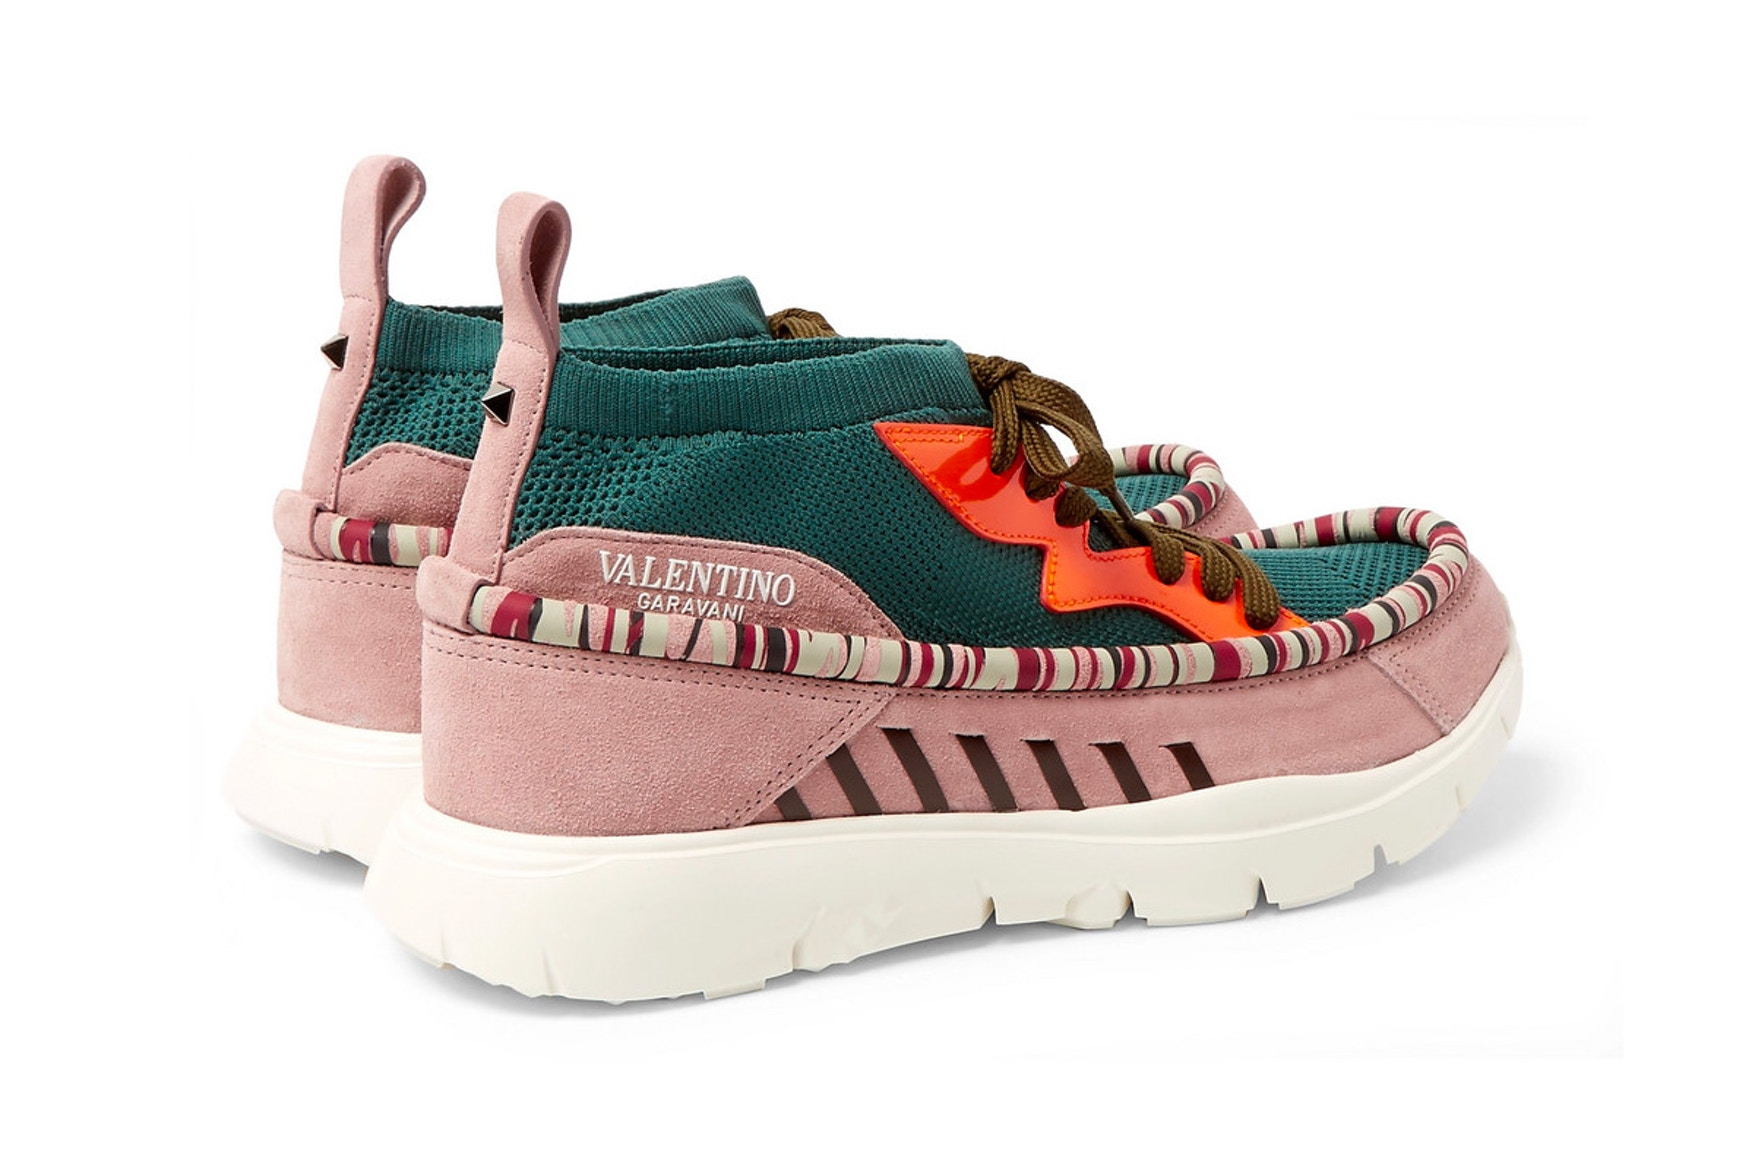 valentino-heroes-tribe-sneakers-release-5